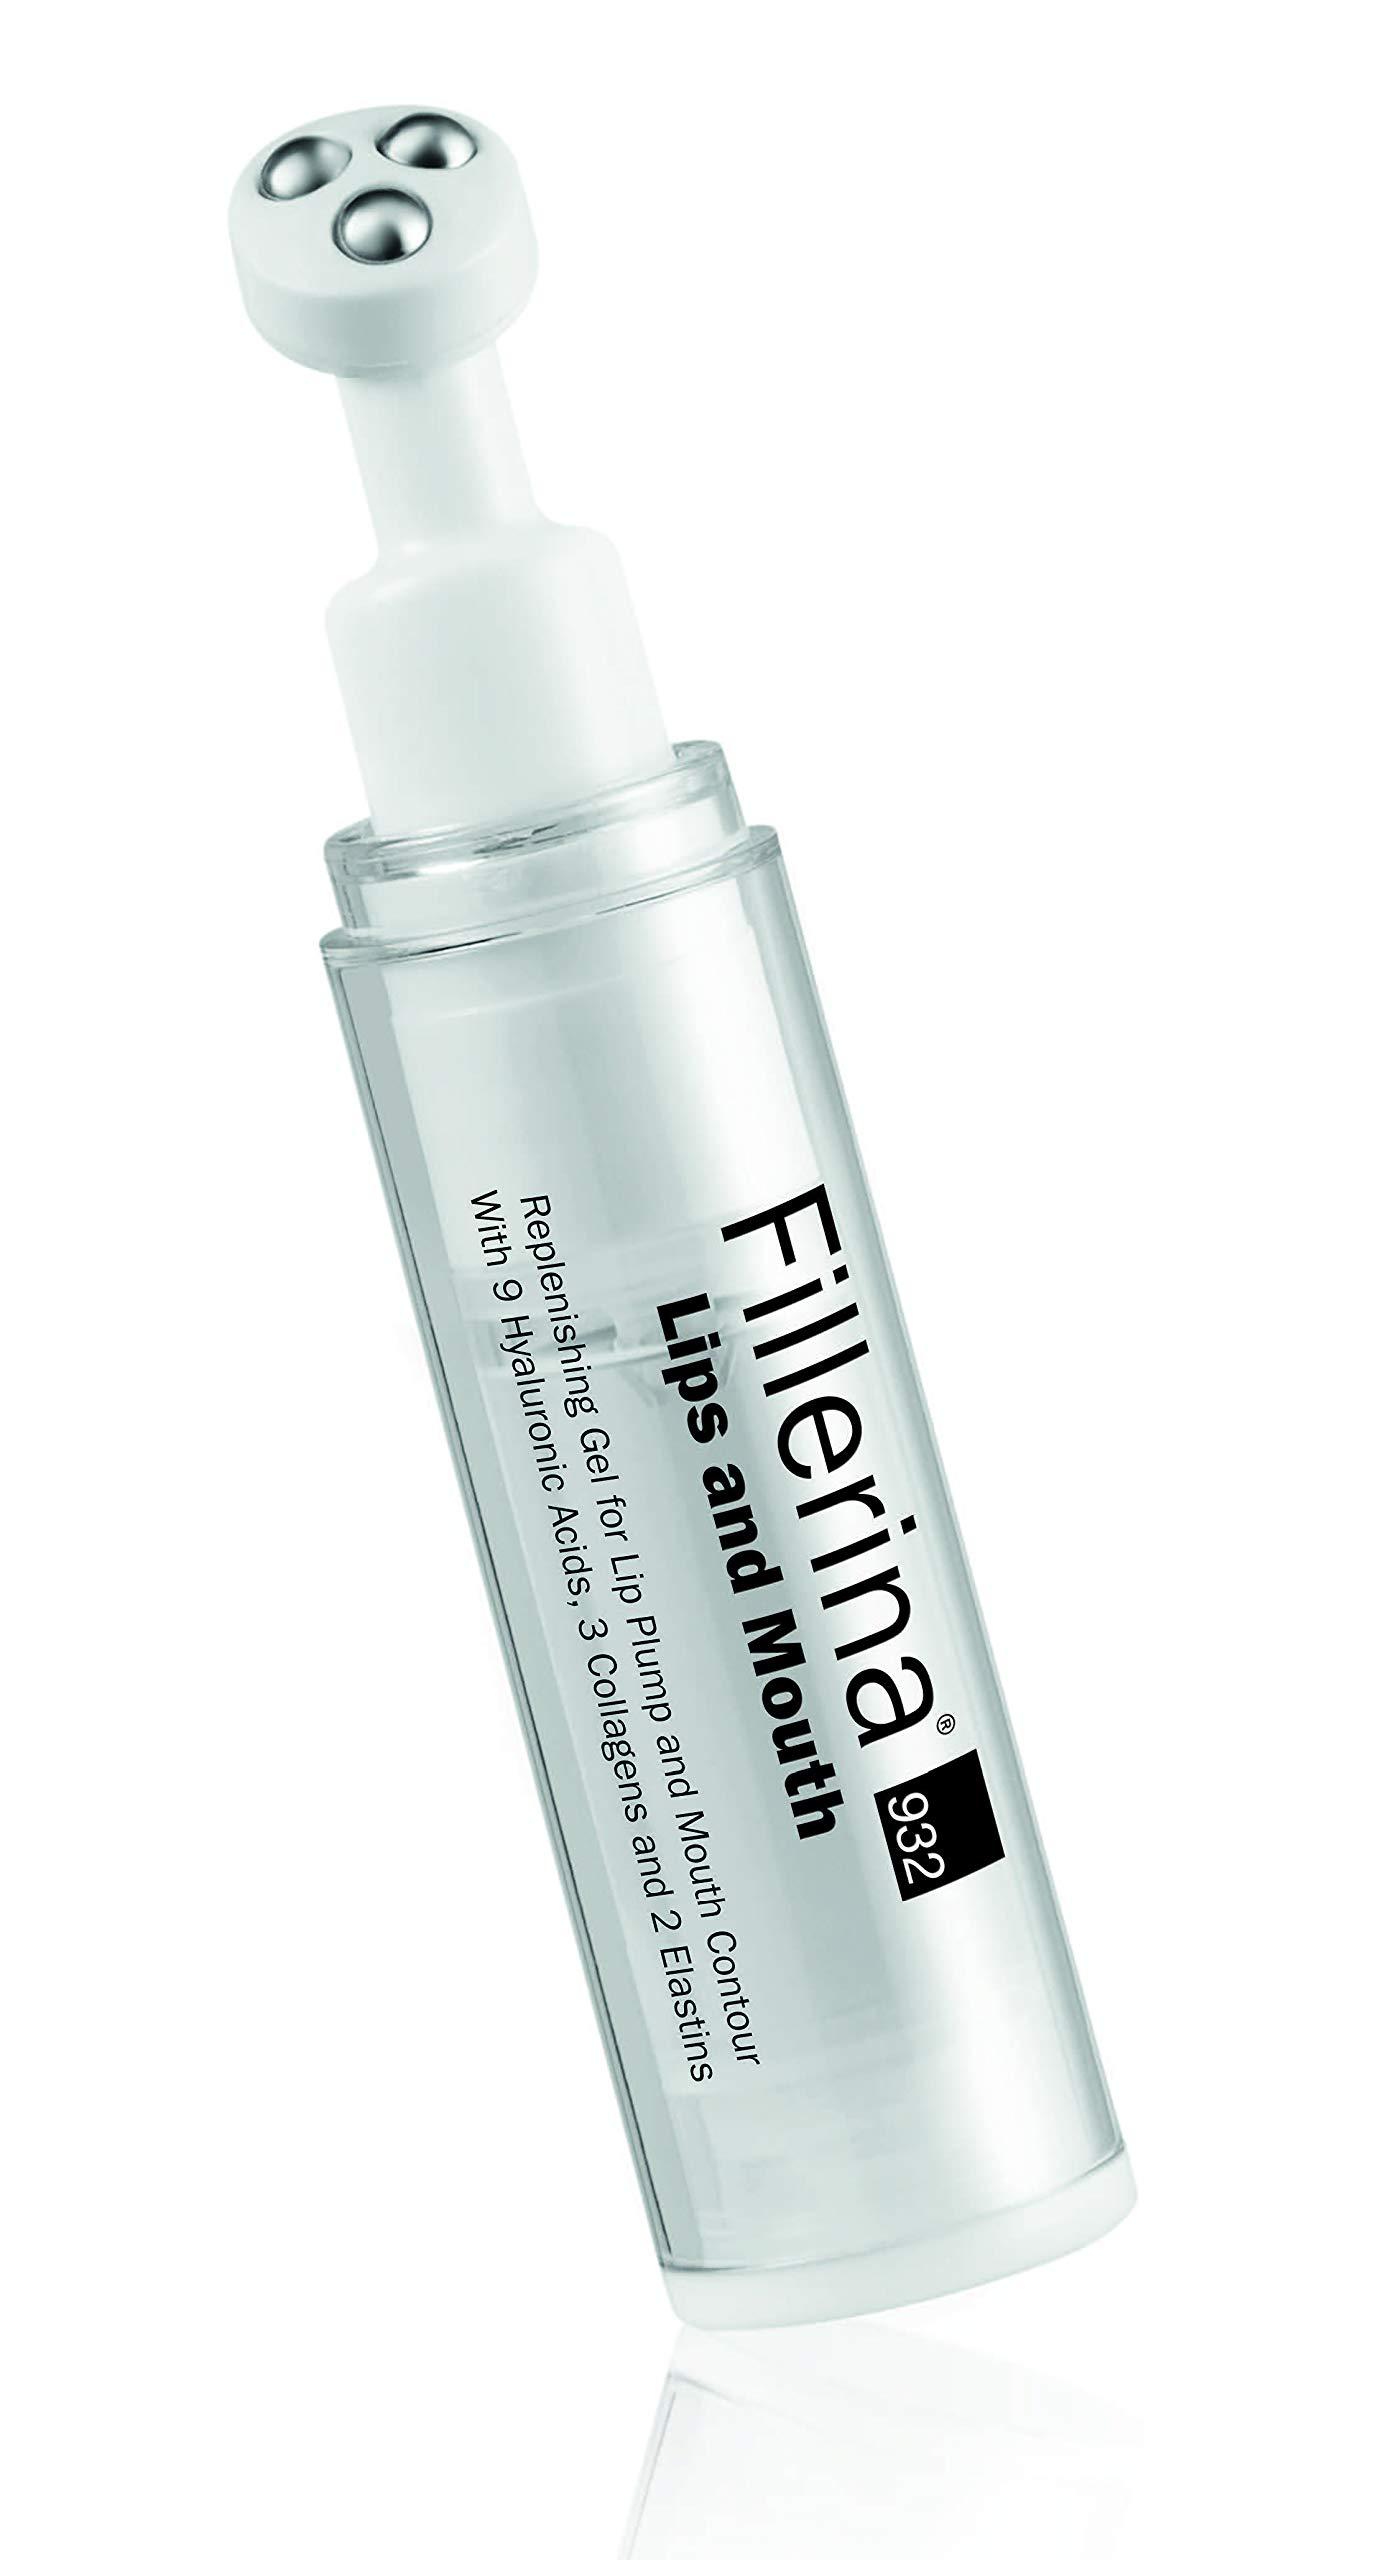 Fillerina 932 Lips and Mouth - Lip Treatment with Hyaluronic Acid and Collagen - Gradual Lip Plump That Reduces Lines Around The Mouth - New Formula (Grade 5)